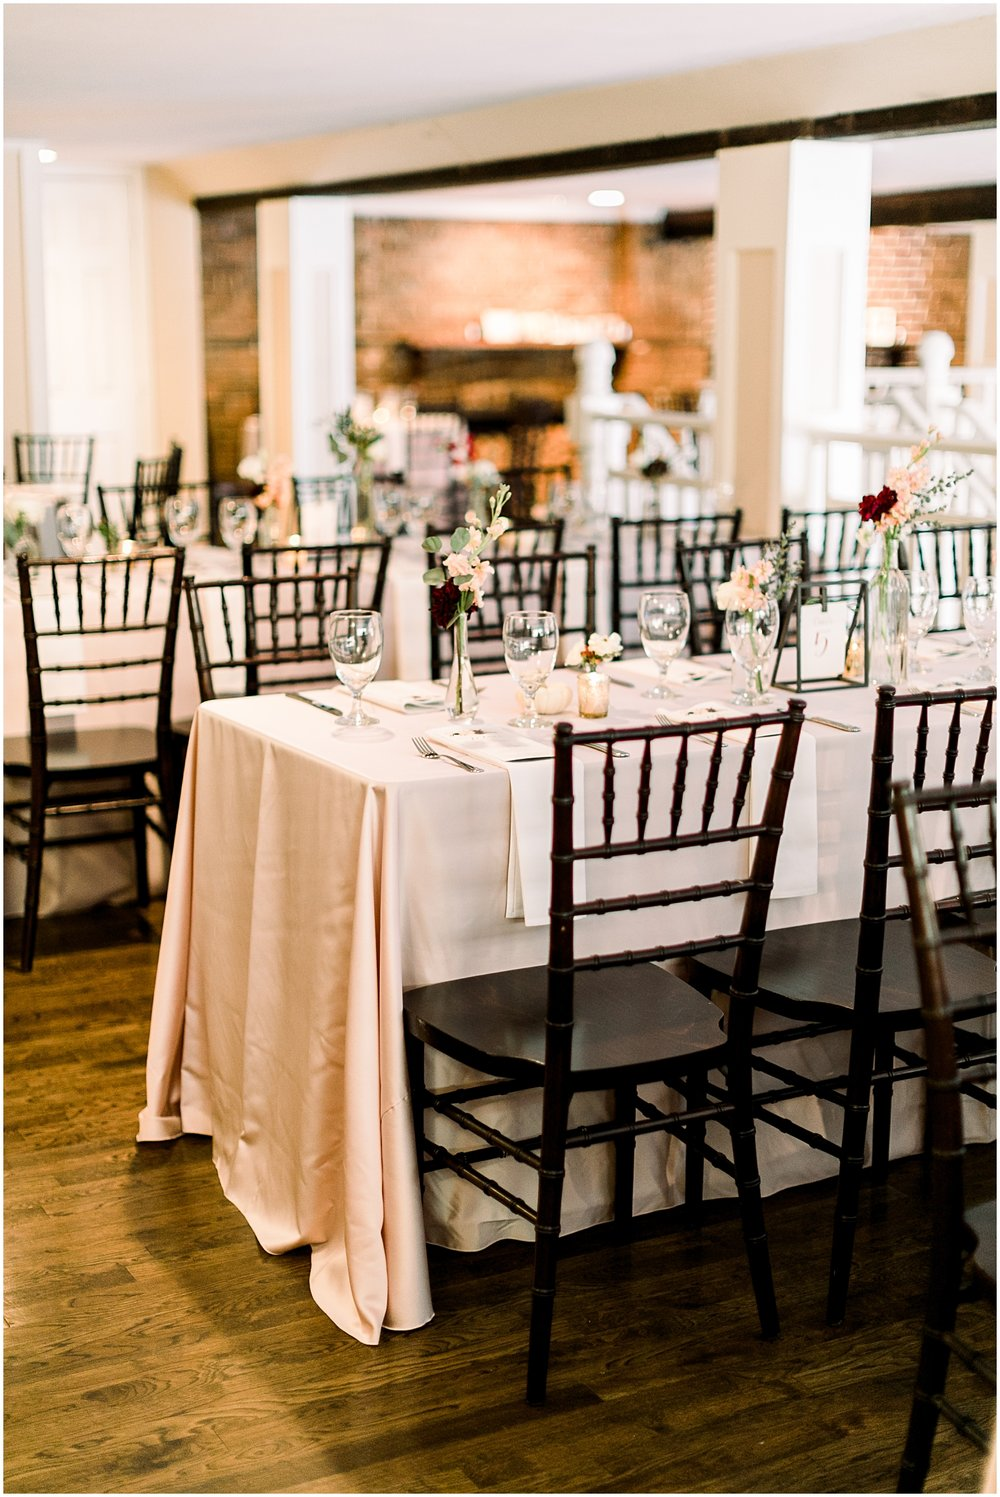 128 South Wedding venue, Downtown Wilmington NC Wedding_Erin L. Taylor Photography_0046.jpg